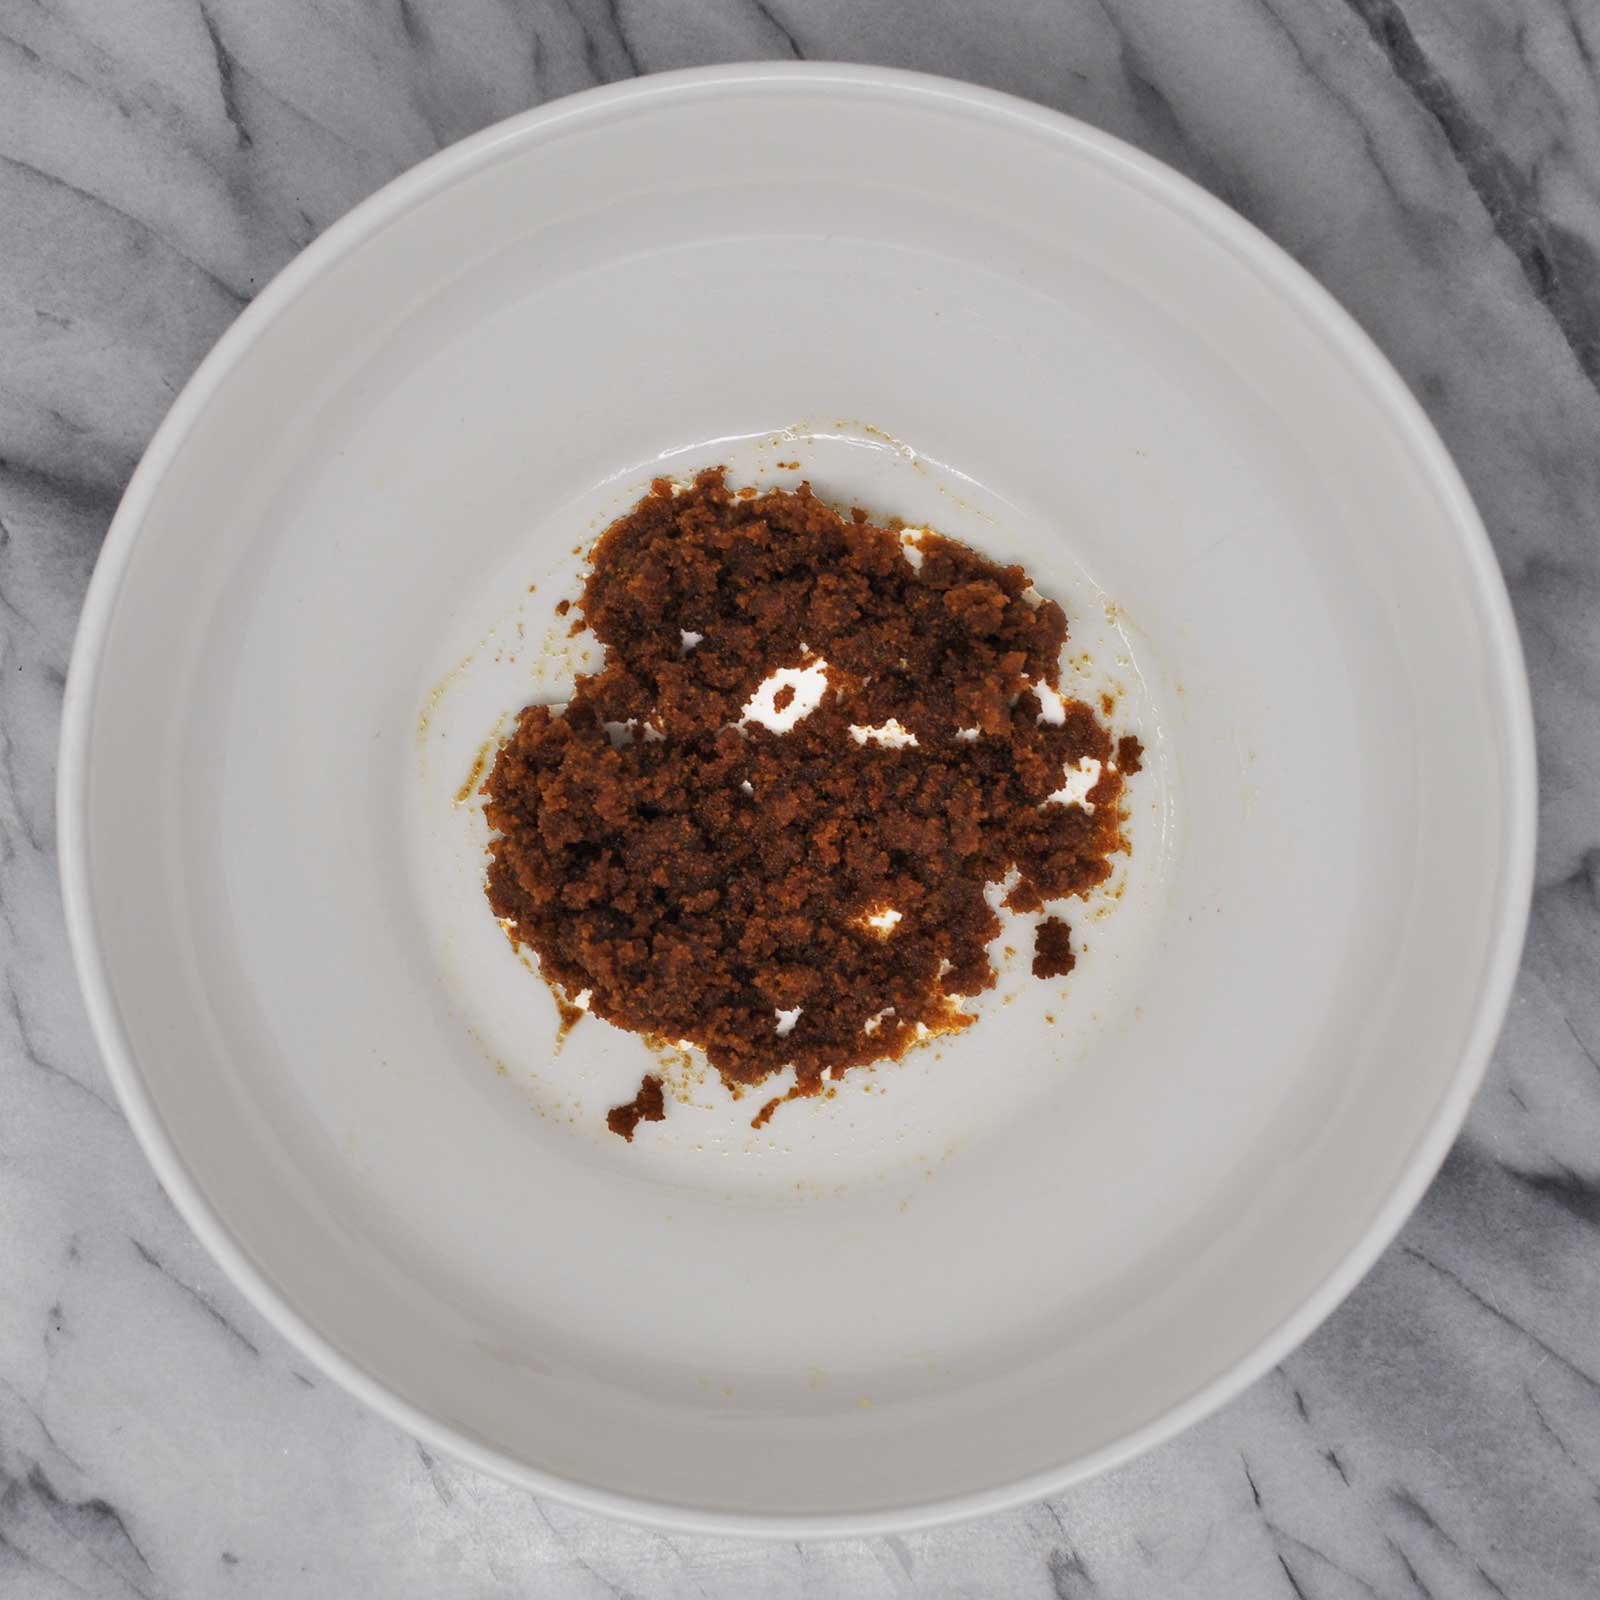 Image of brown sugar mixed with olive oil in a white bowl resting on a marble countertop